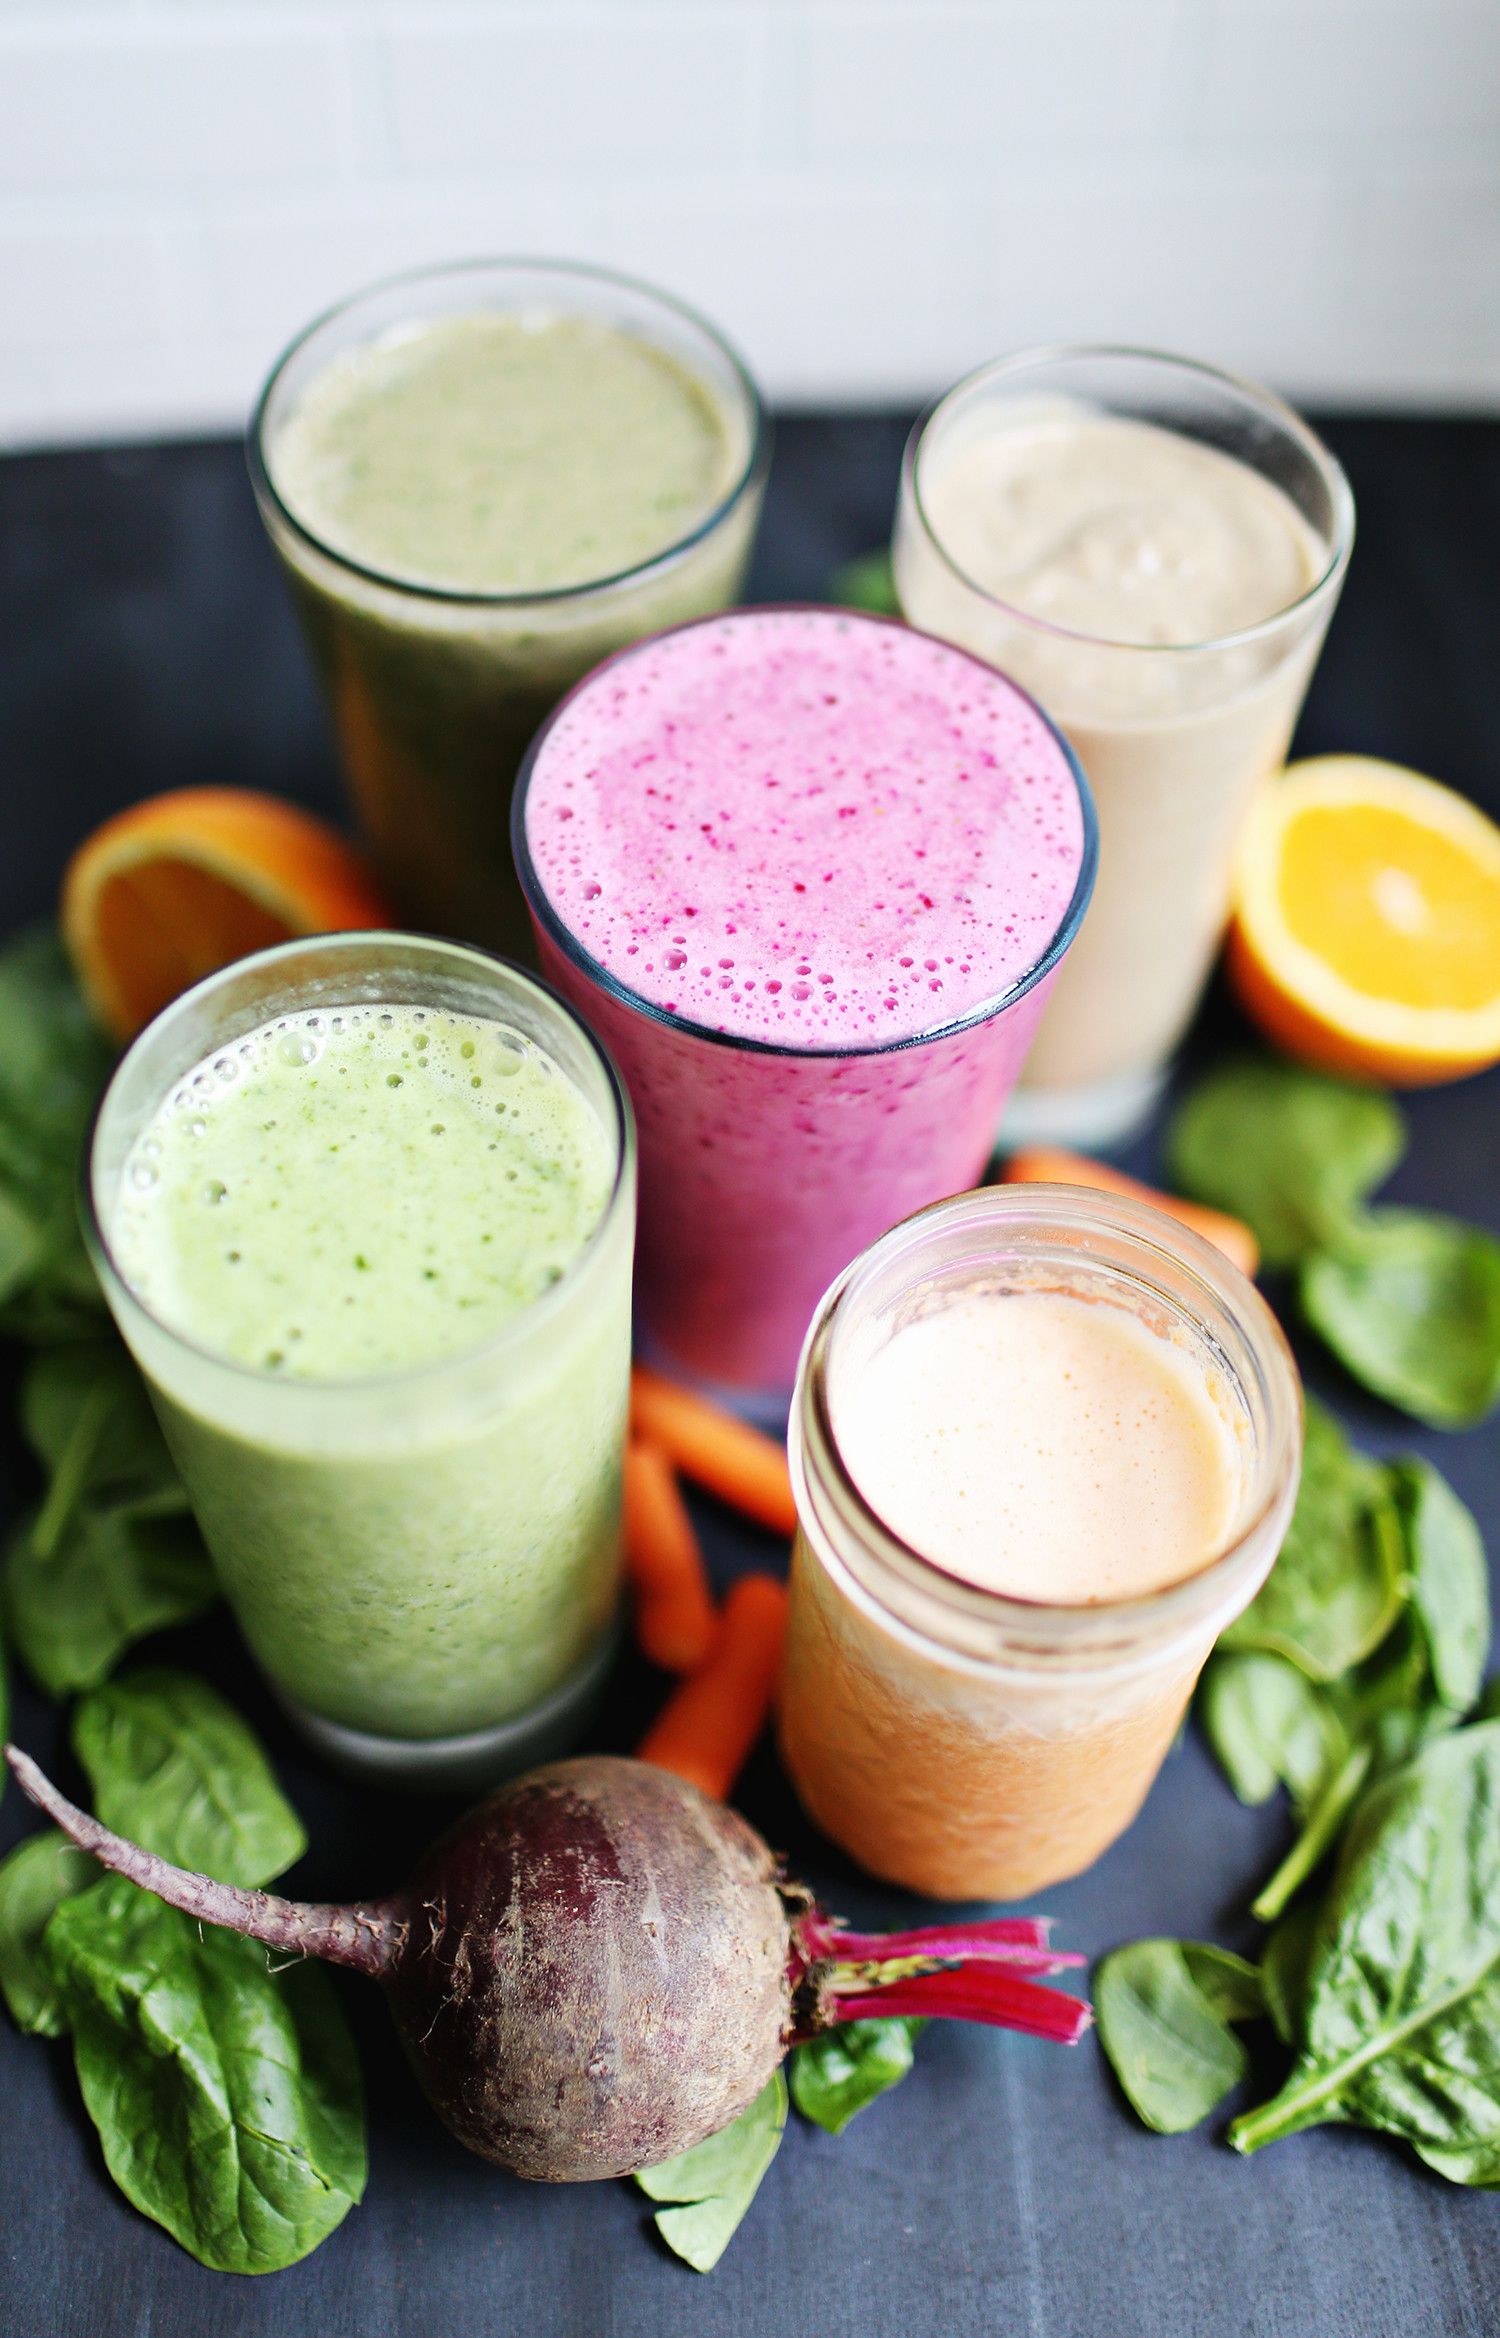 Healthy Smoothie Recipes For Breakfast  5 Veggie Based Breakfast Smoothies A Beautiful Mess